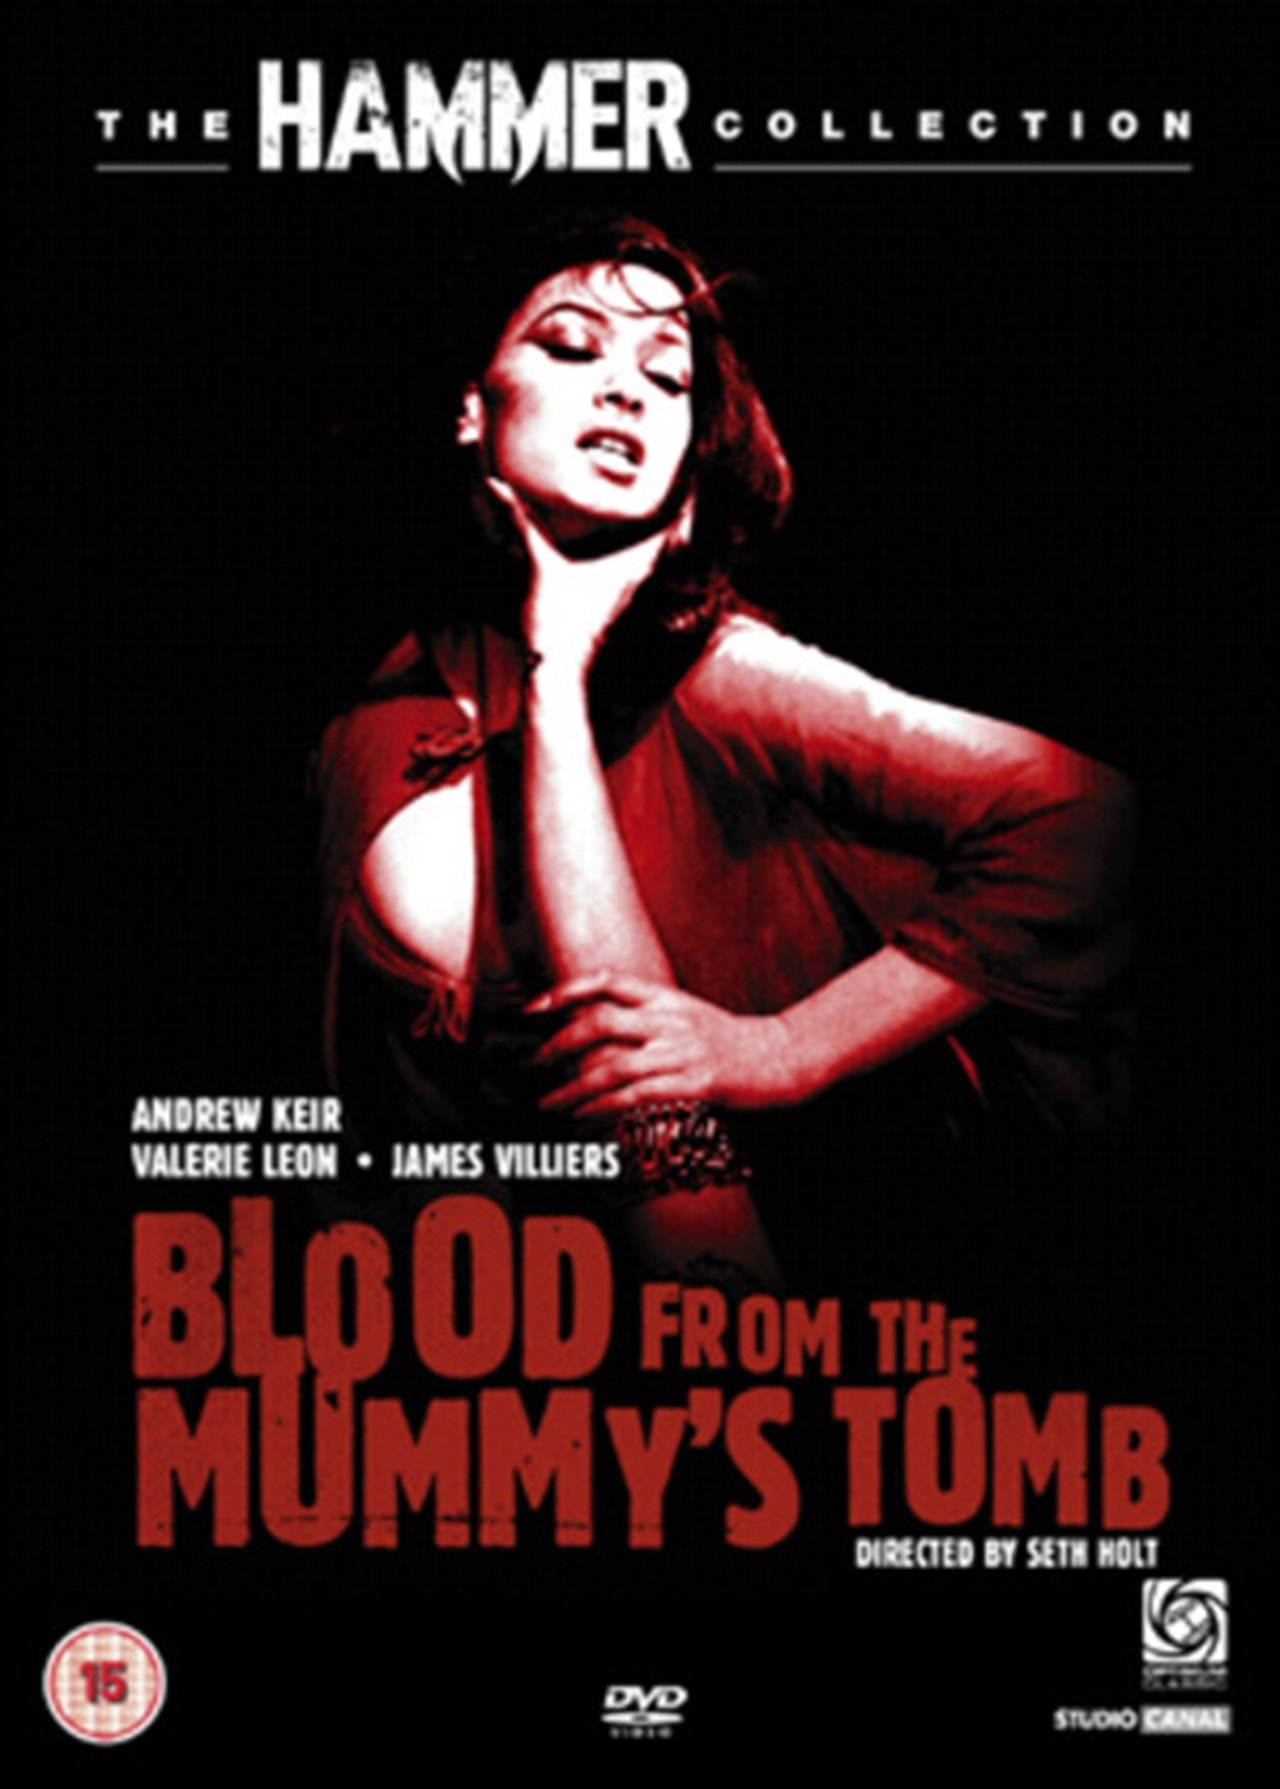 Blood from the Mummy's Tomb - 1